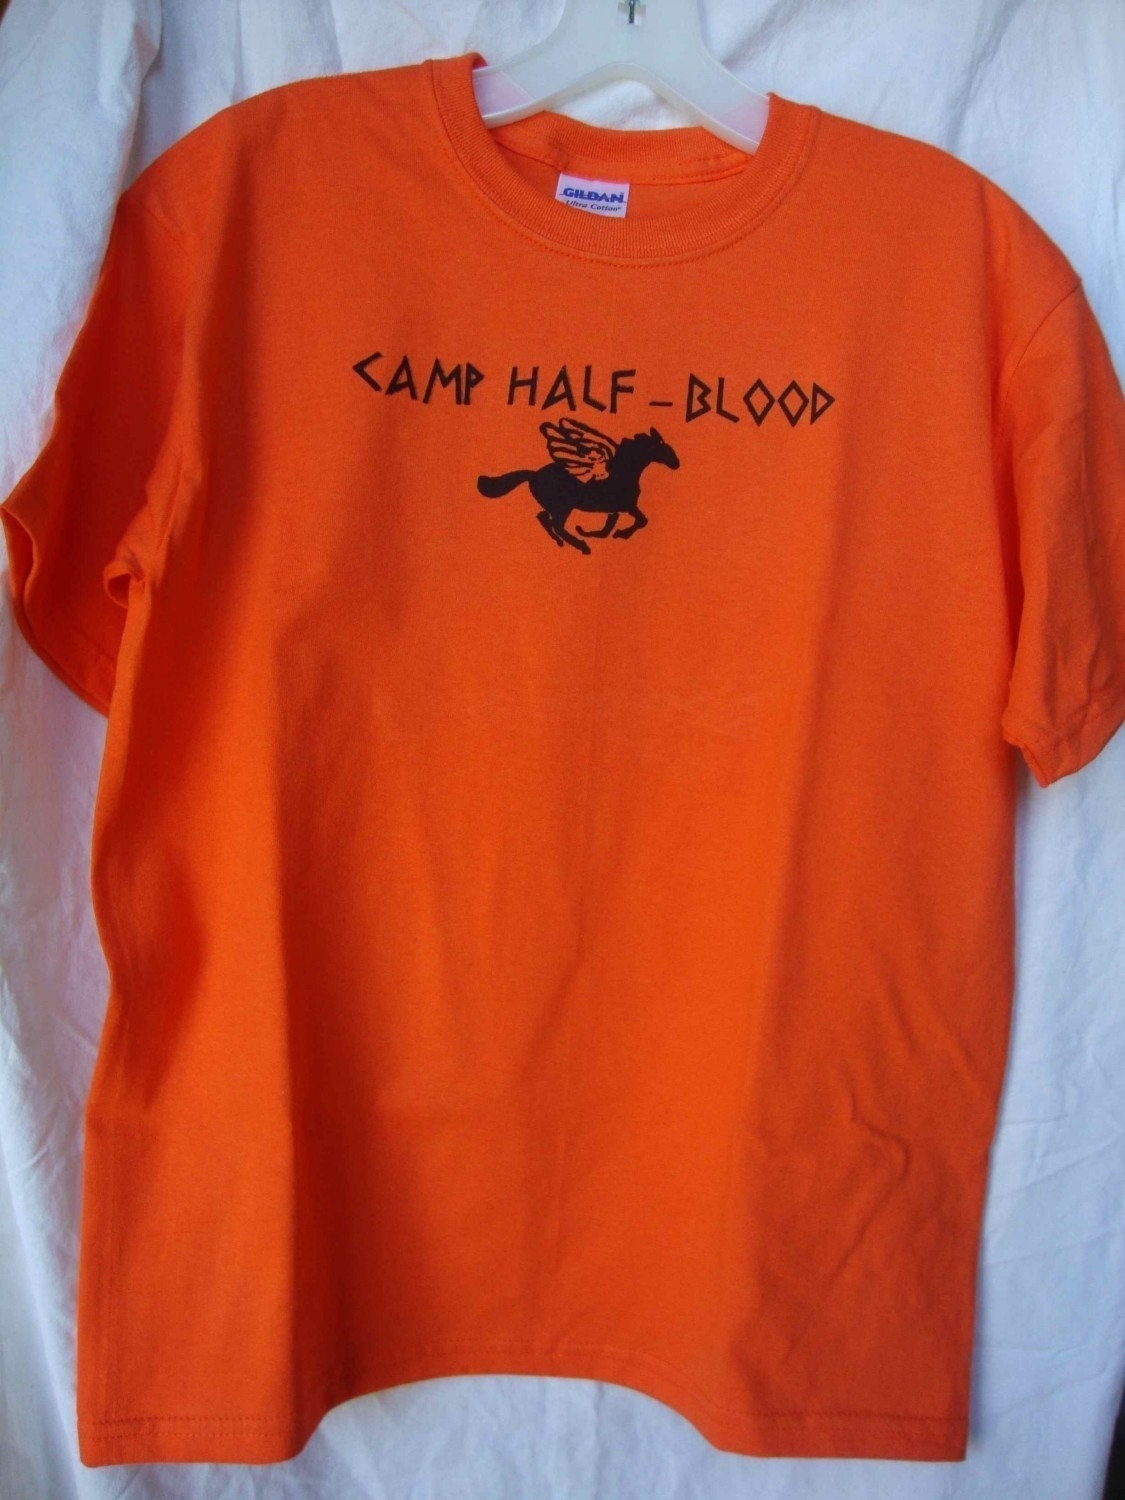 Camp half blood tee shirt adult large by ttcouture on etsy